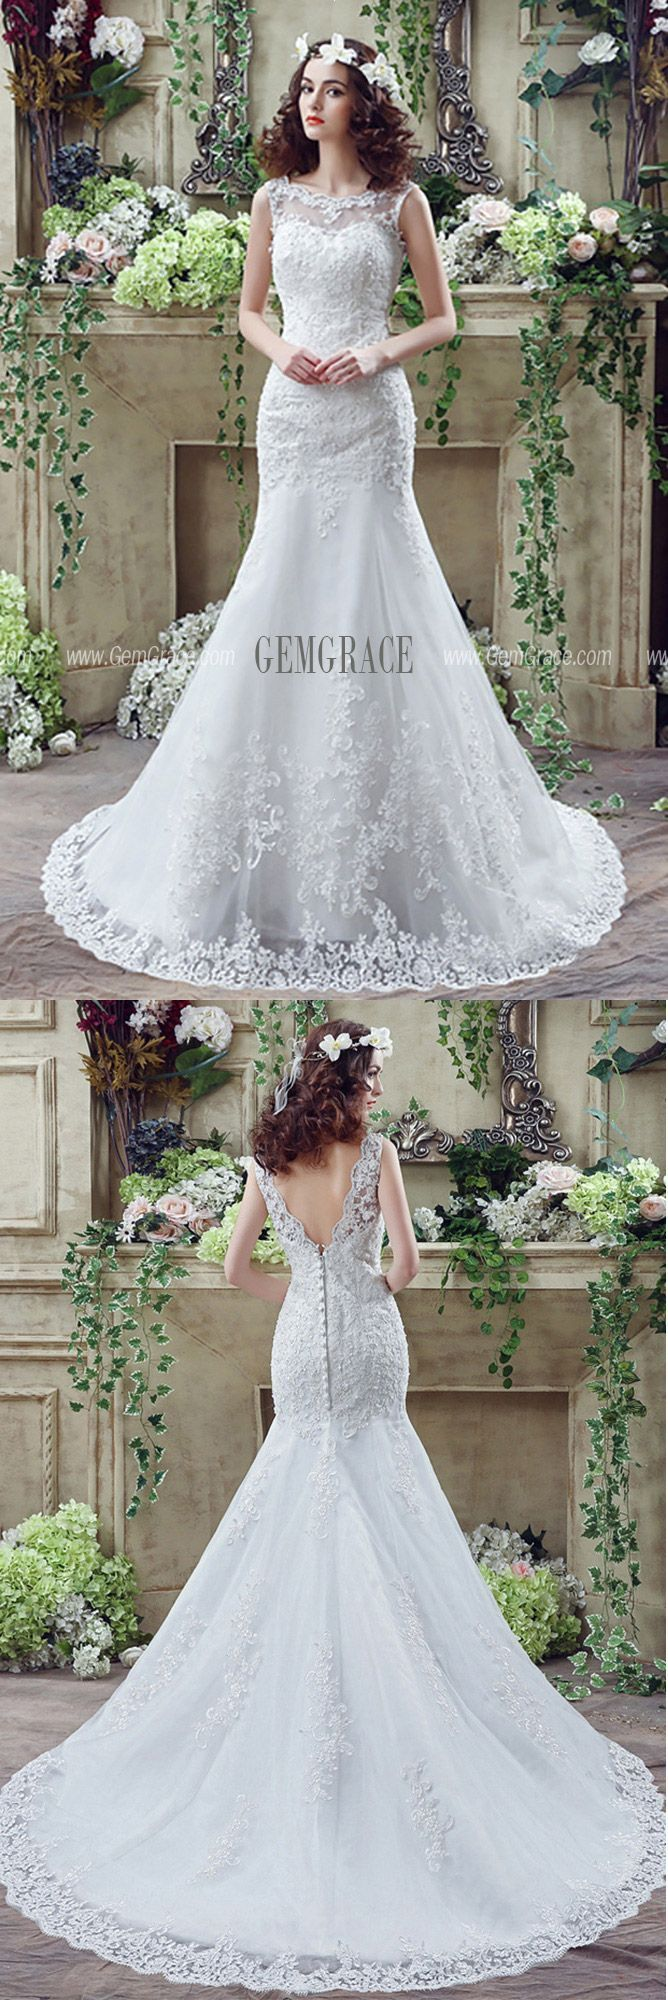 Fit And Flare Curvy Lace Wedding Dress Summer With Low Buttons Back #H76016 at G…